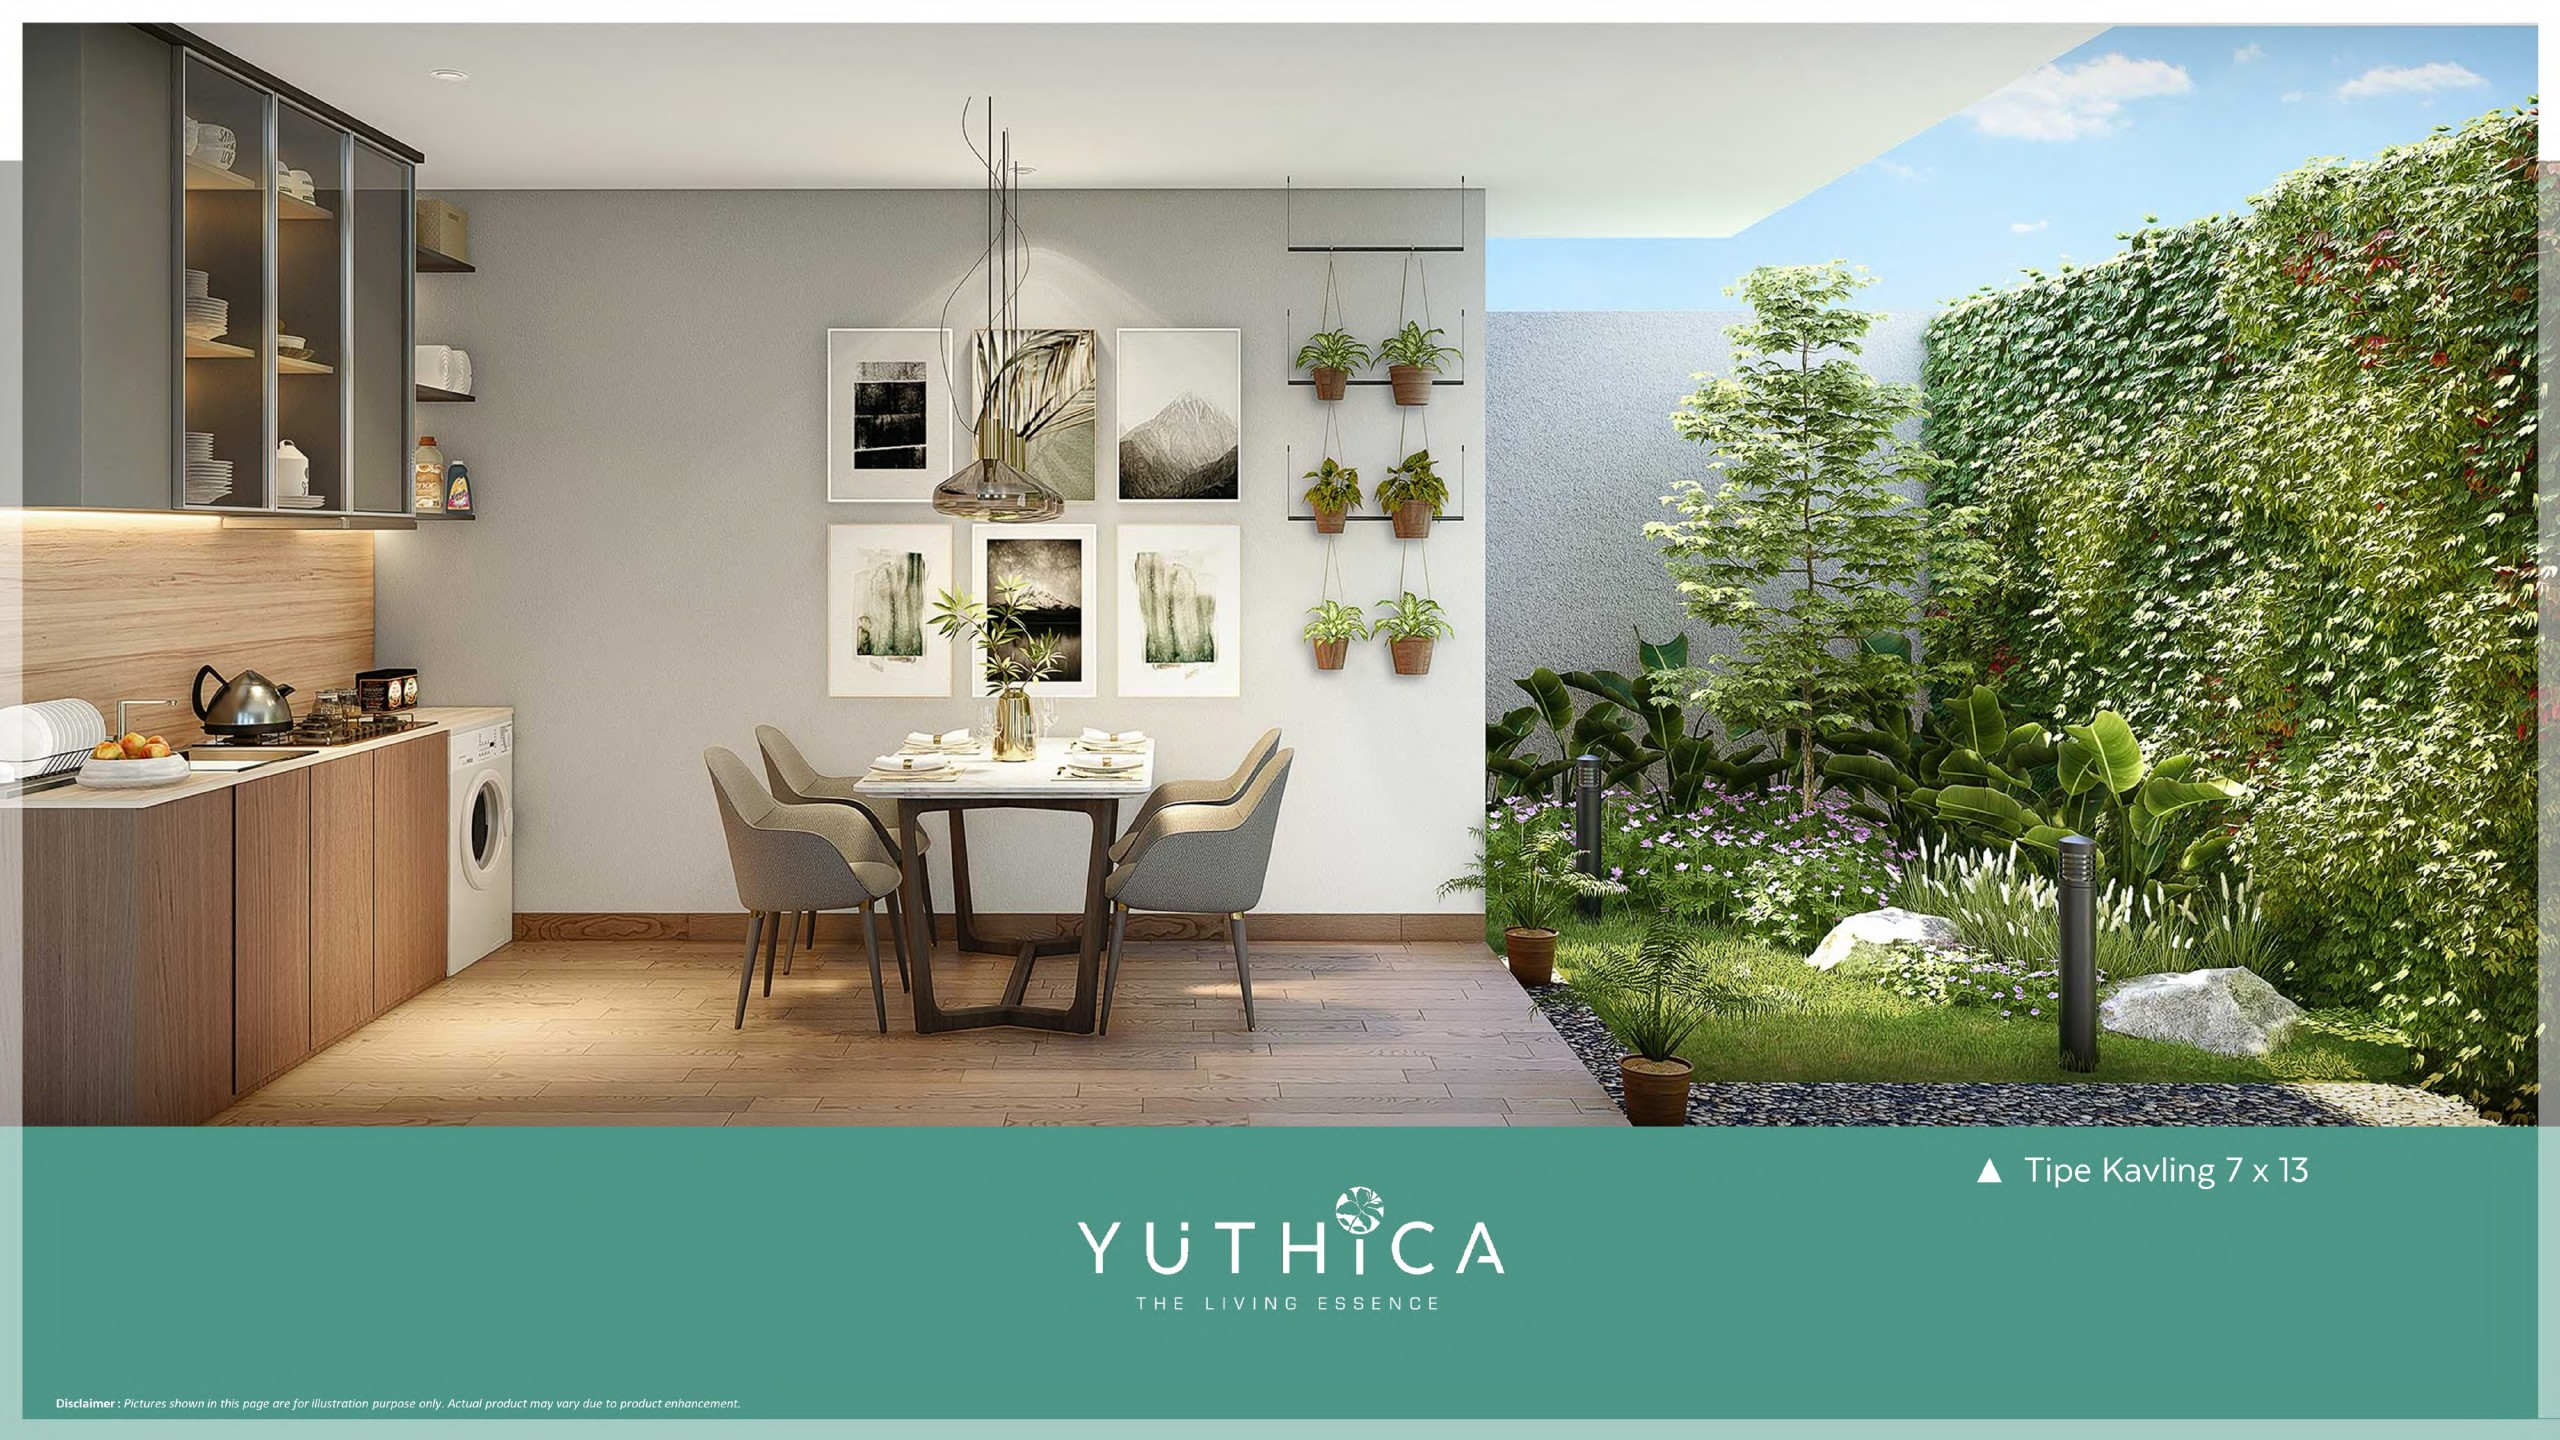 yuthica 7x13